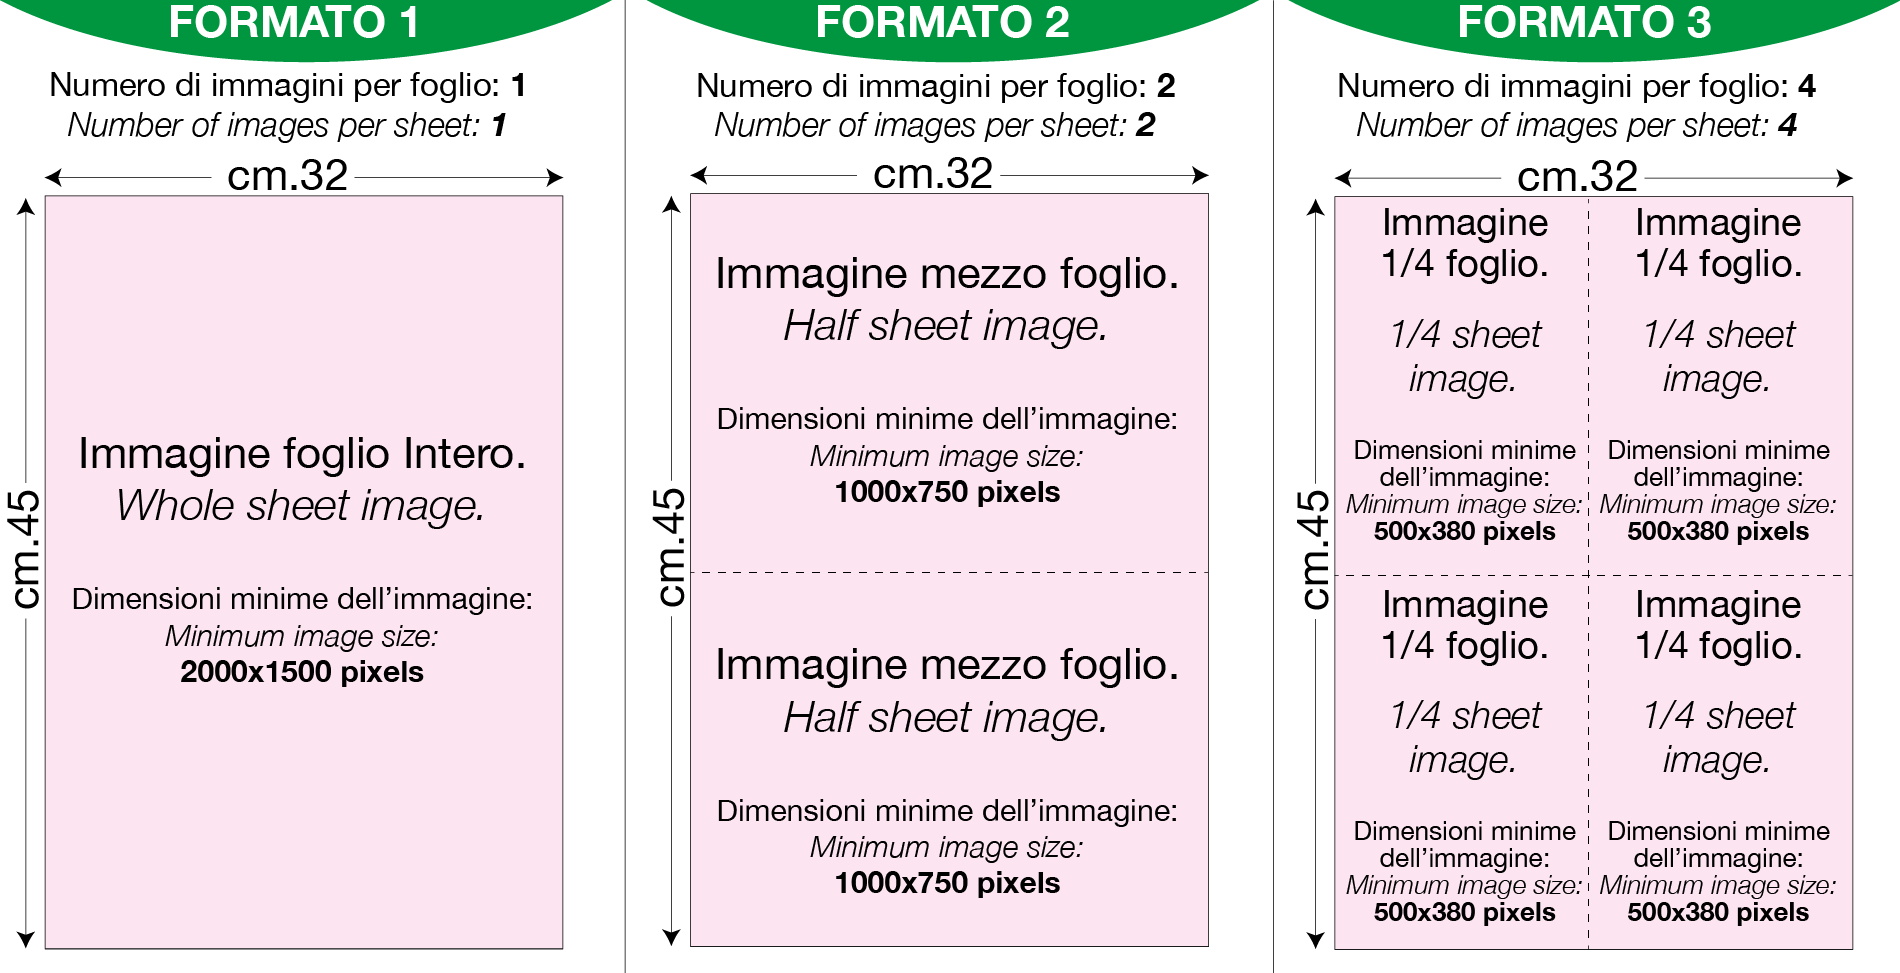 Rice Paper Formats